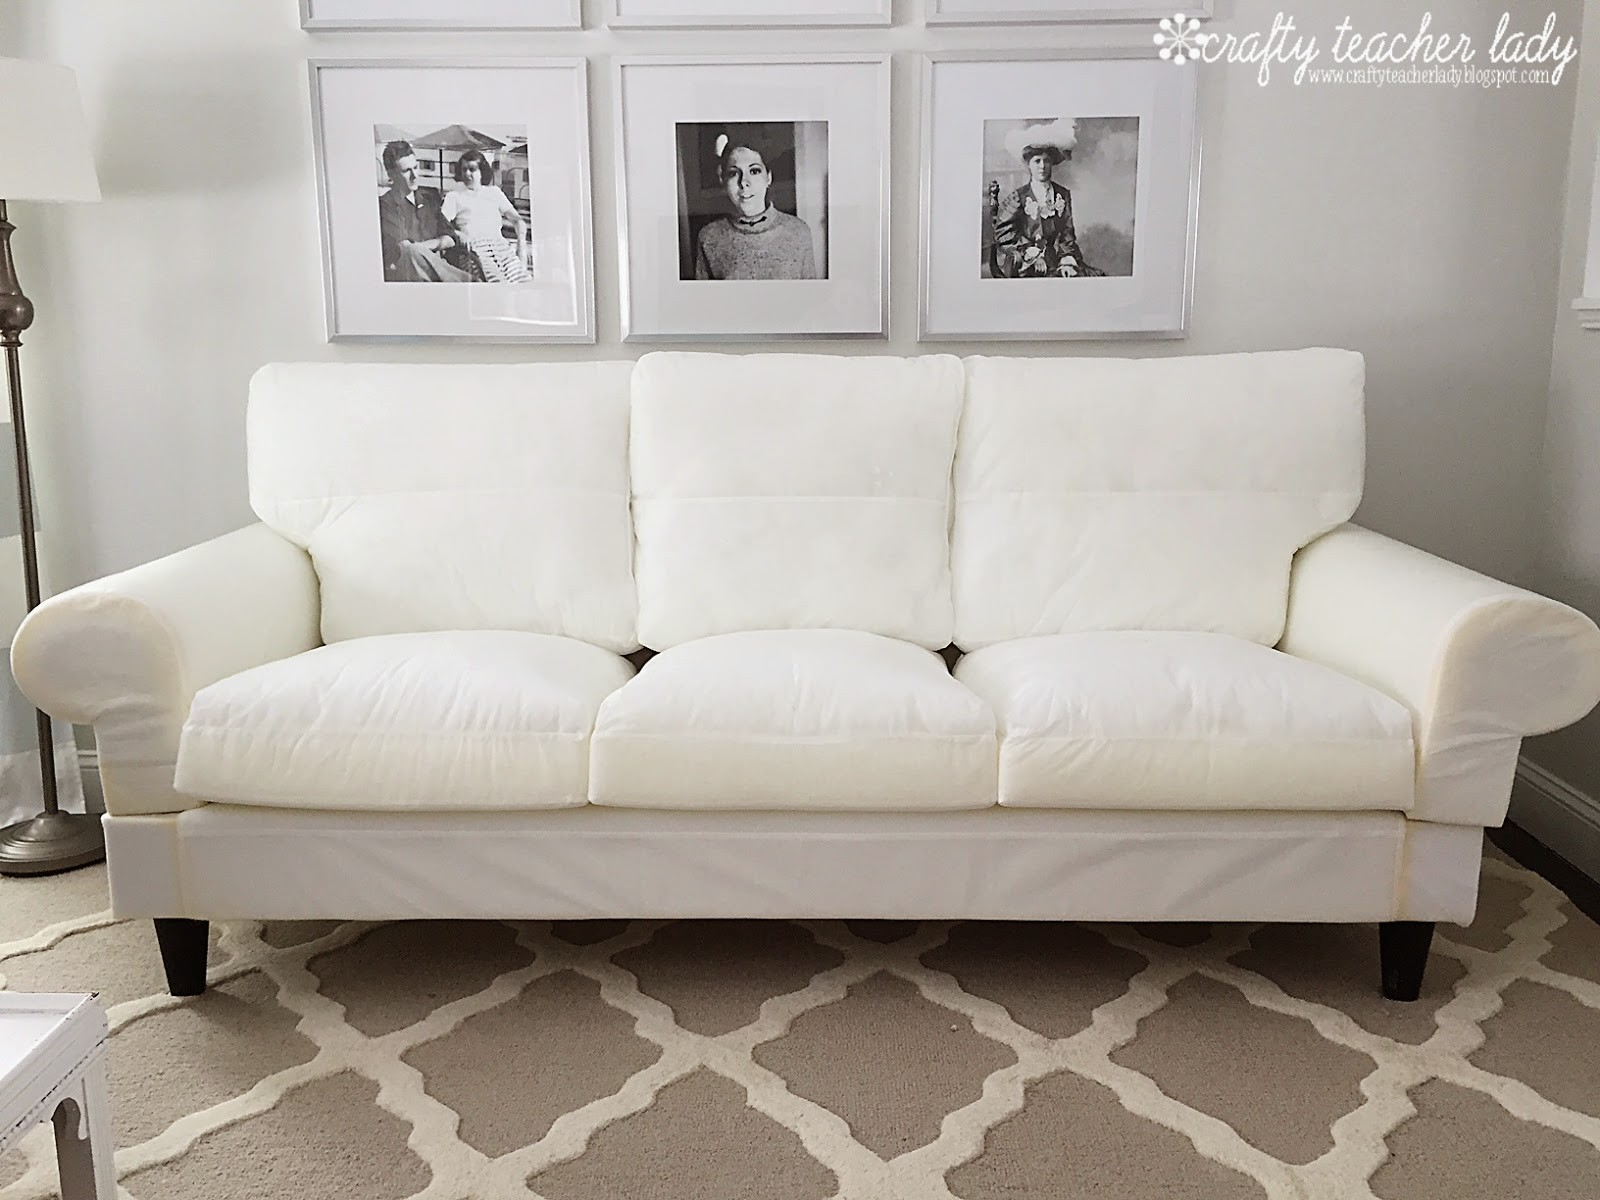 Ektorp sofa Review Lovely Crafty Teacher Lady Review Of the Ikea Ektorp sofa Series Design